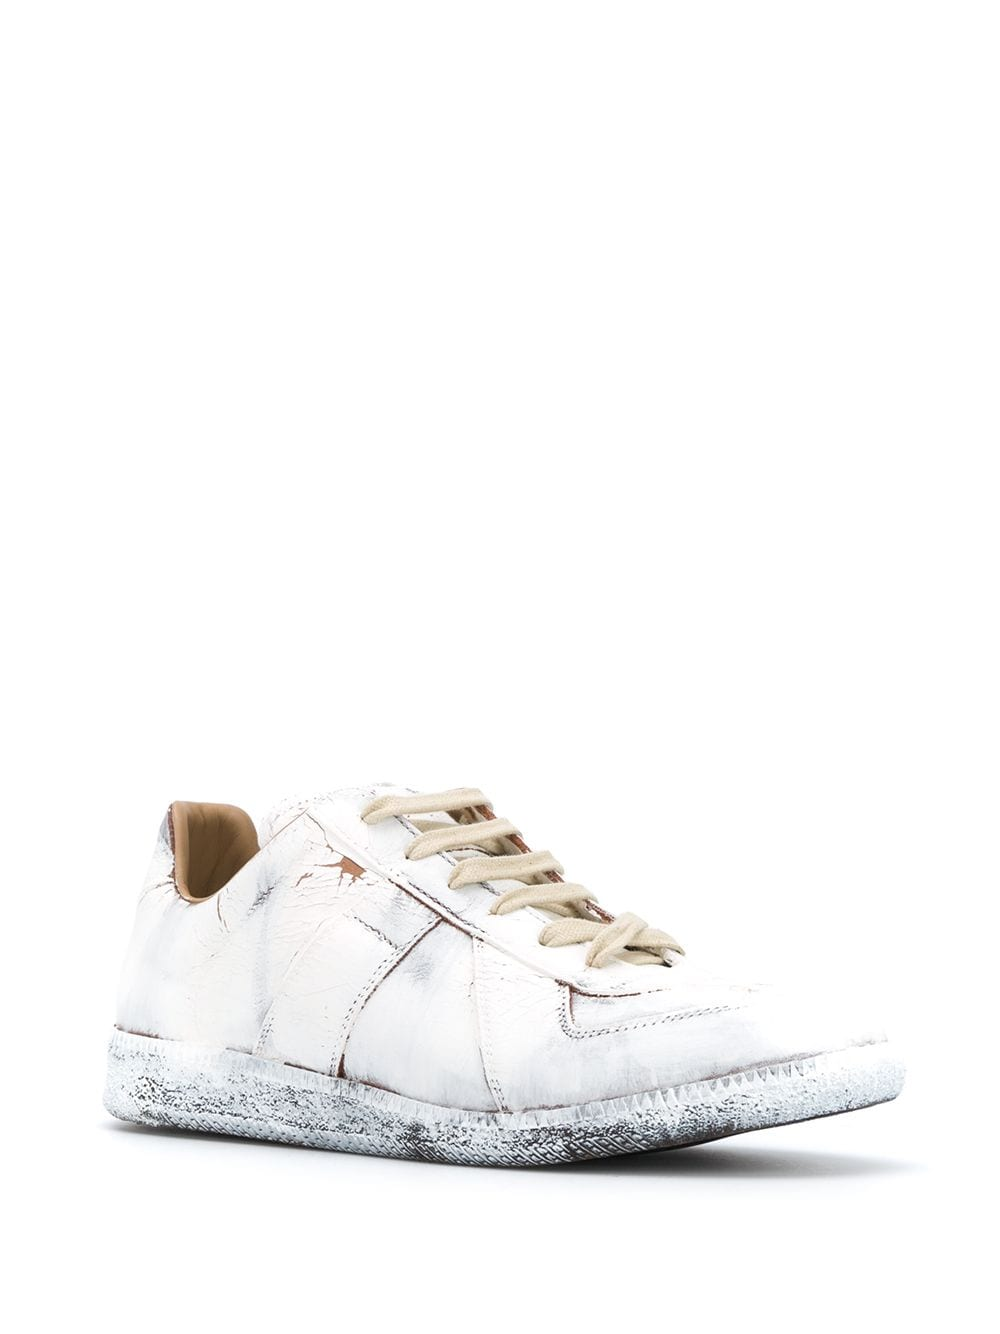 MAISON MARGIELA MEN BIANCHETTO GERMAIN TRAINER